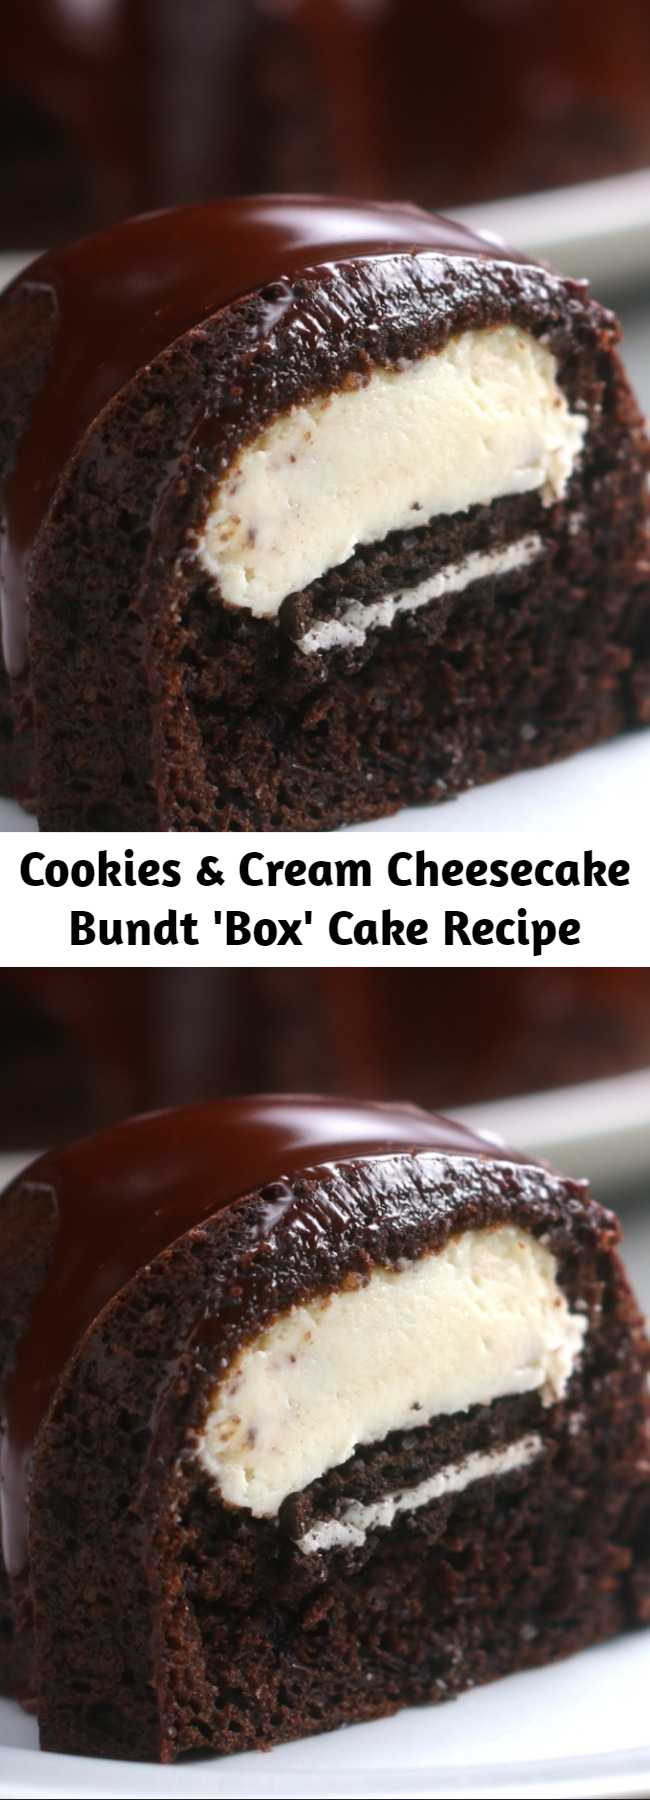 Cookies & Cream Cheesecake Bundt 'Box' Cake Recipe - Who could beat this Cheesecake Filled Chocolate Bundt Cake with its rich yet tender chocolate cake, surprise cheesecake filling, and thick fudgy glaze? YUM.